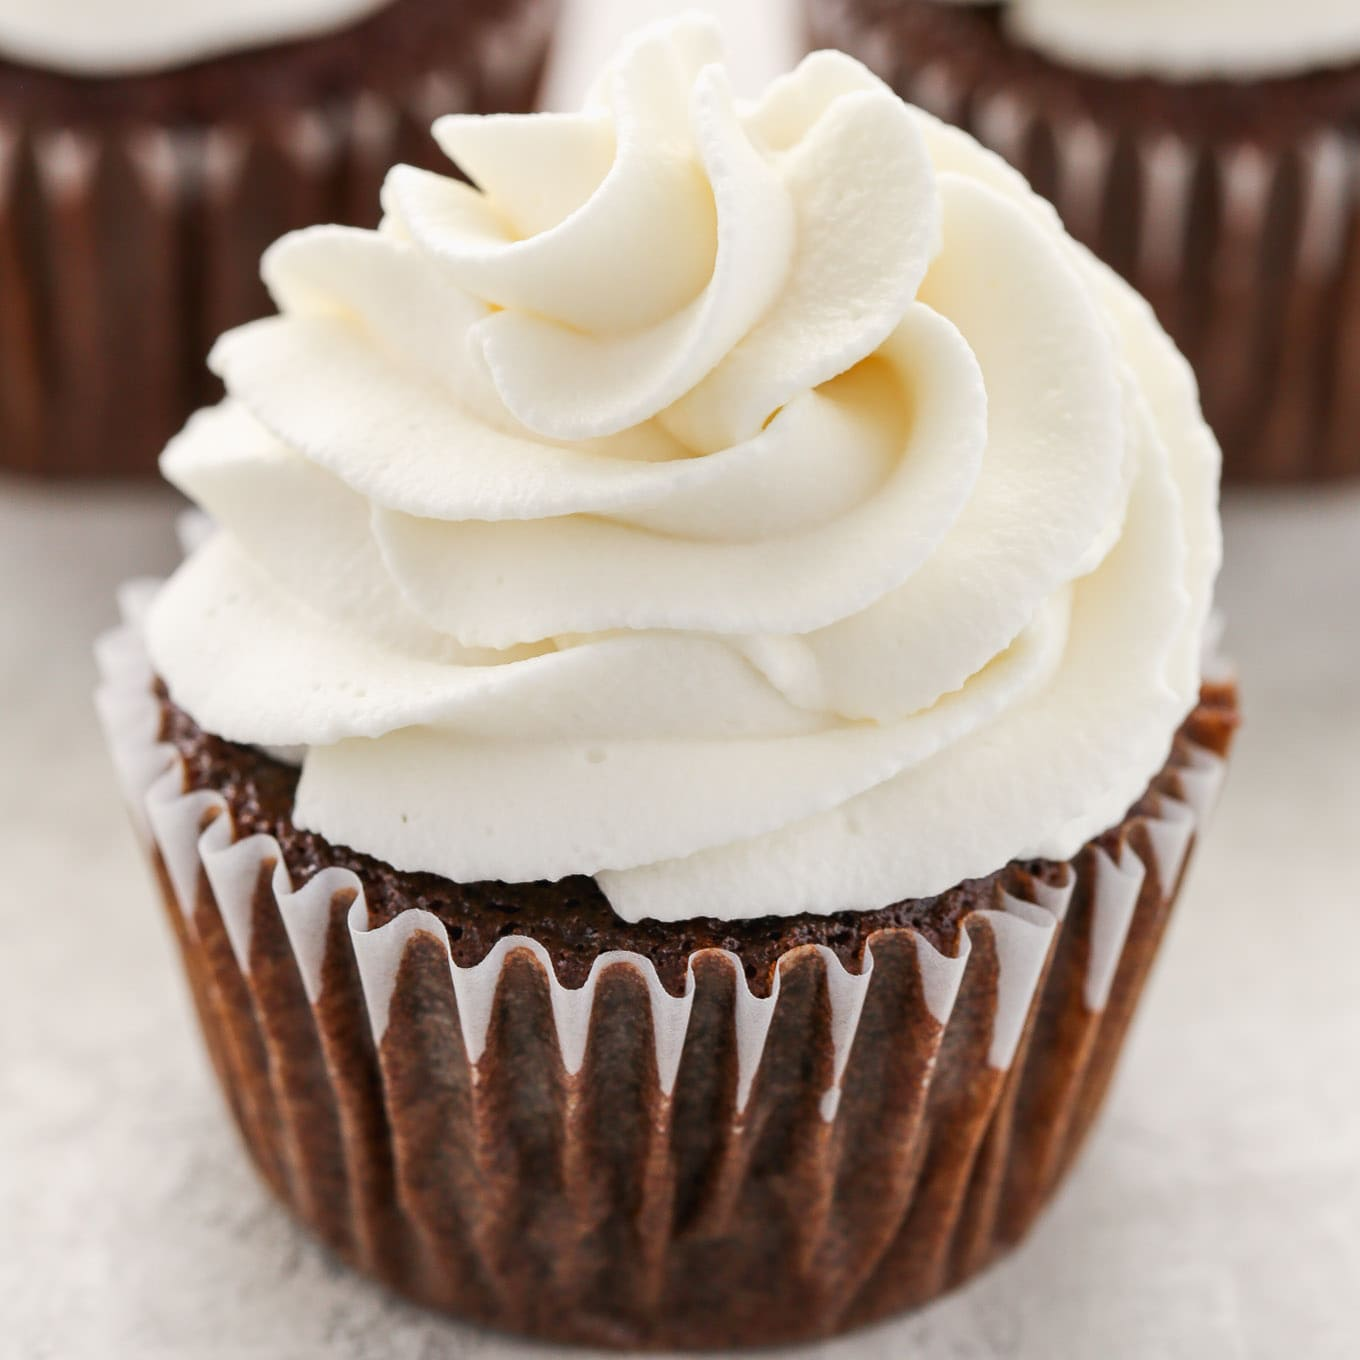 How to Stabilize Whipped Cream recommend